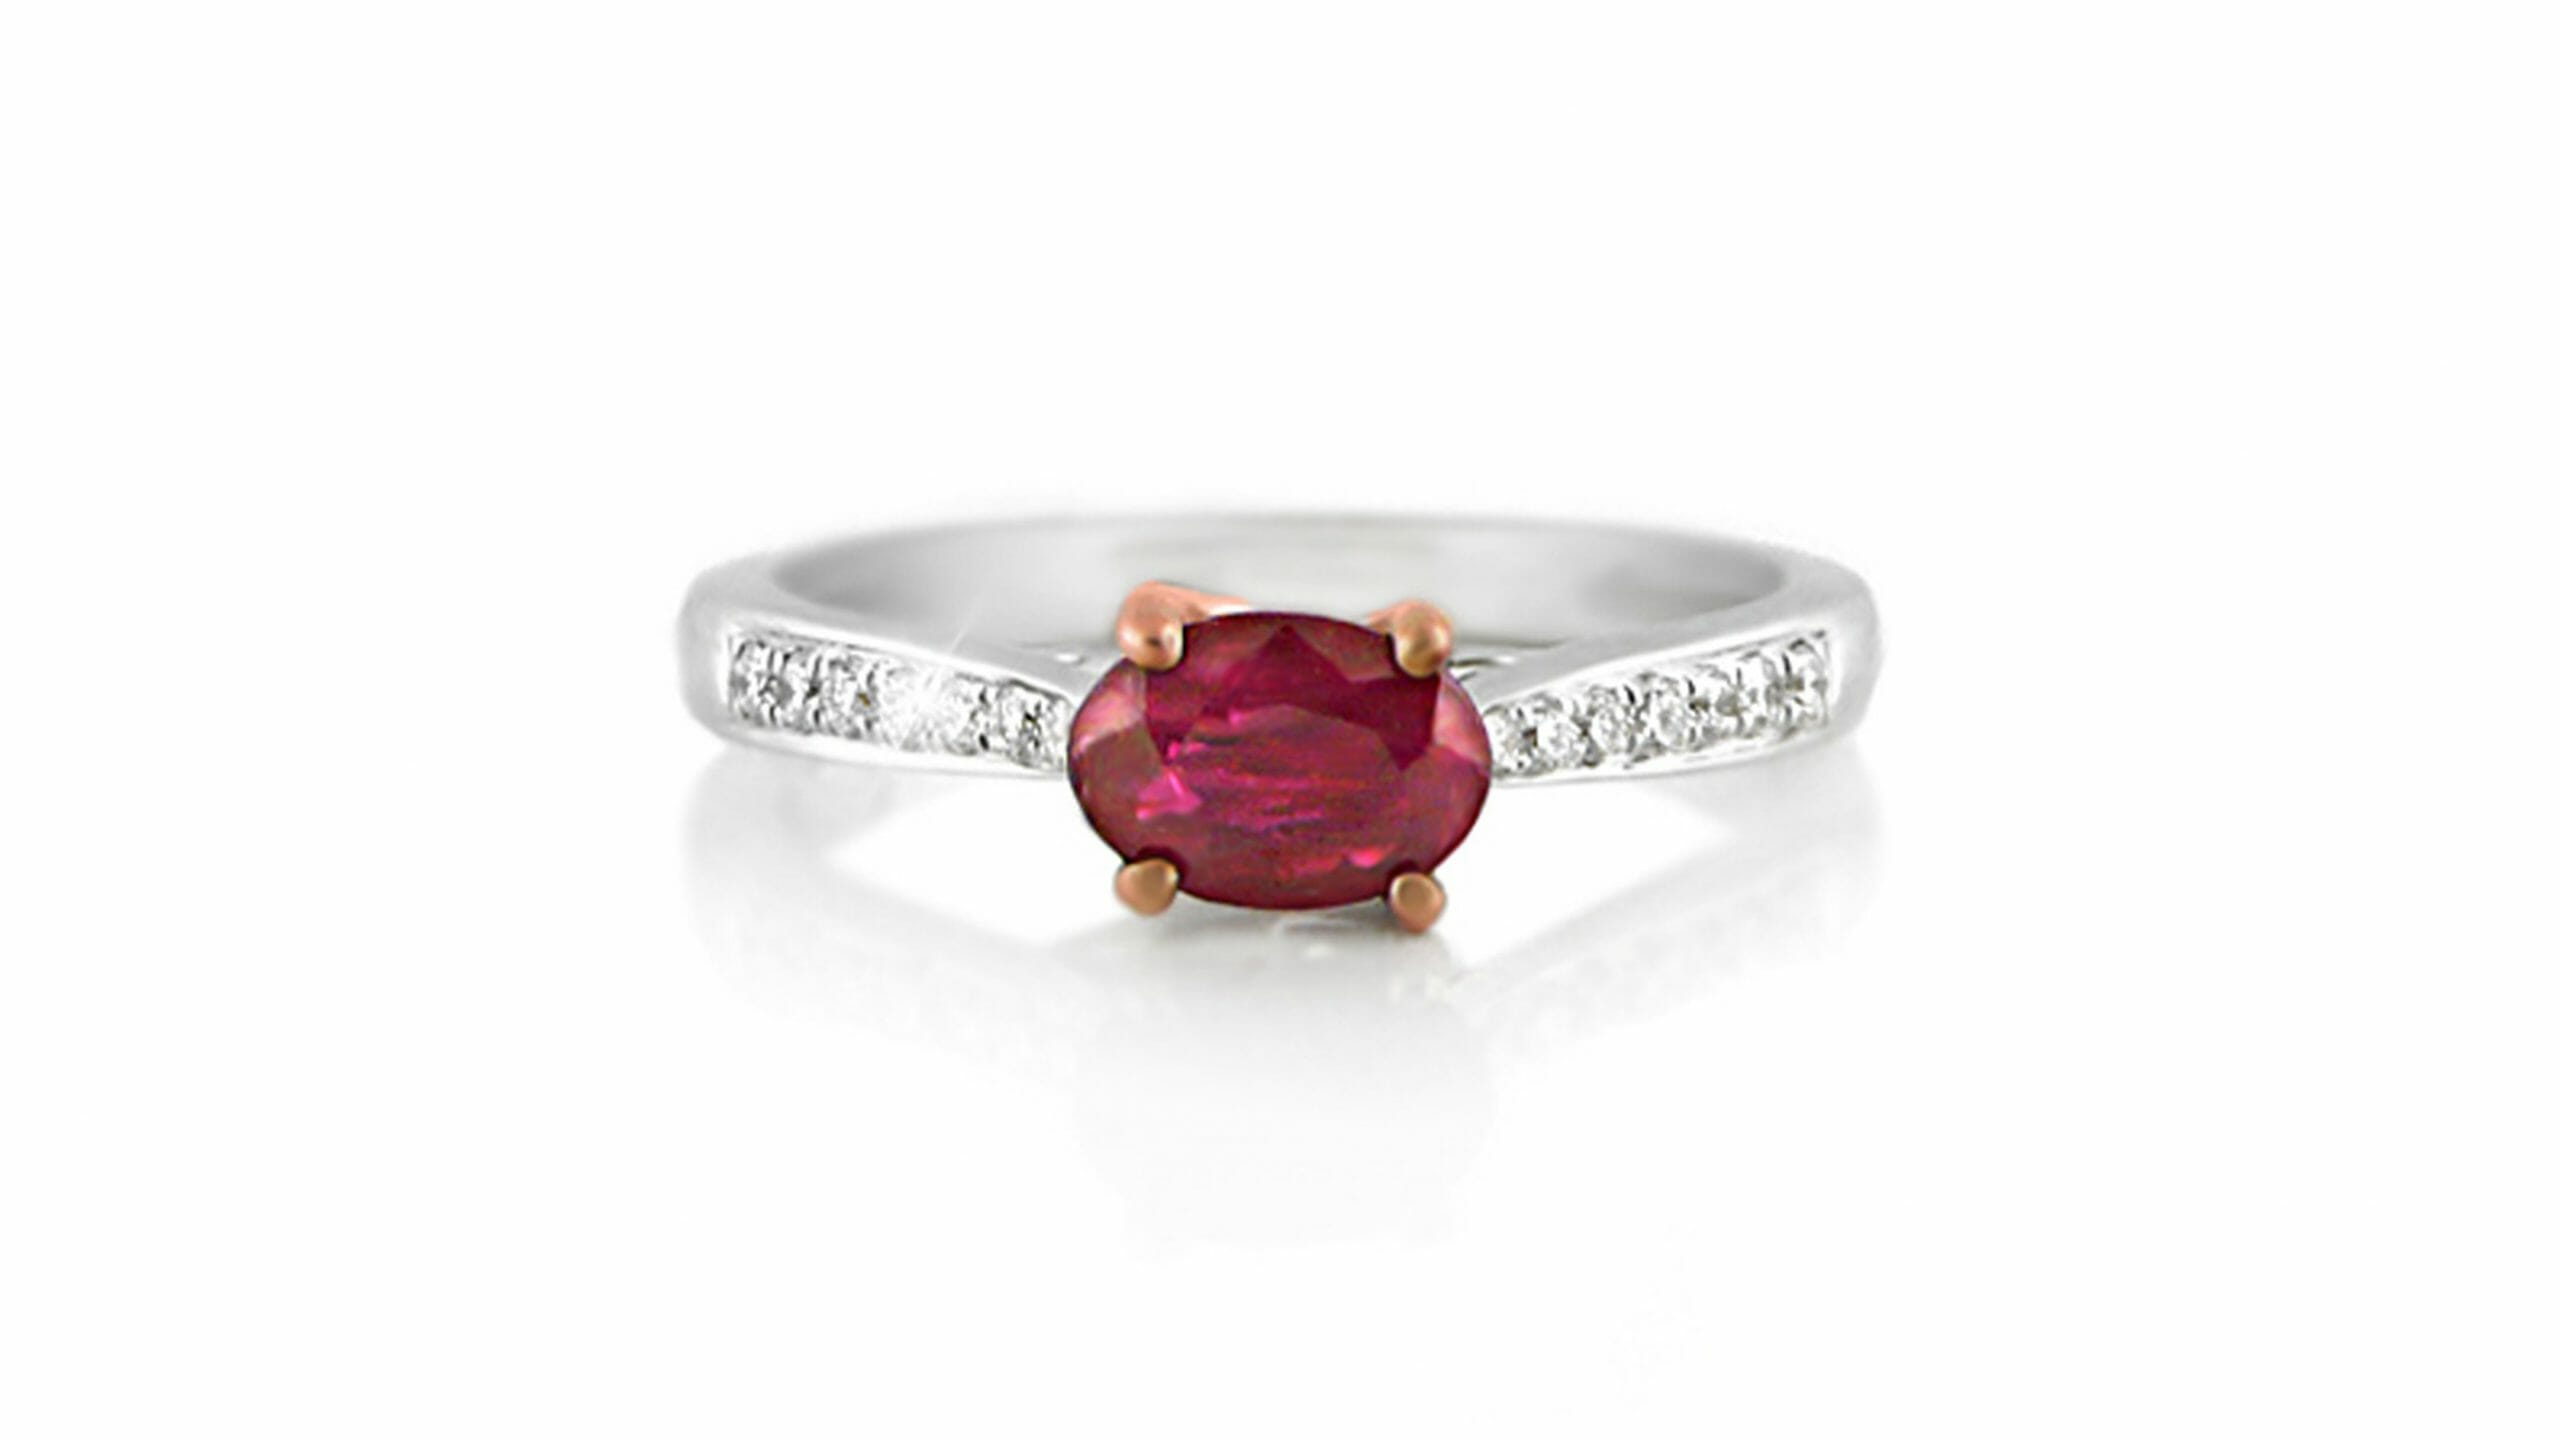 Ruby & diamond ring | An 18ct White Gold Ring Heralding An Oval Cut Ruby With Diamonds Extending Down The Band